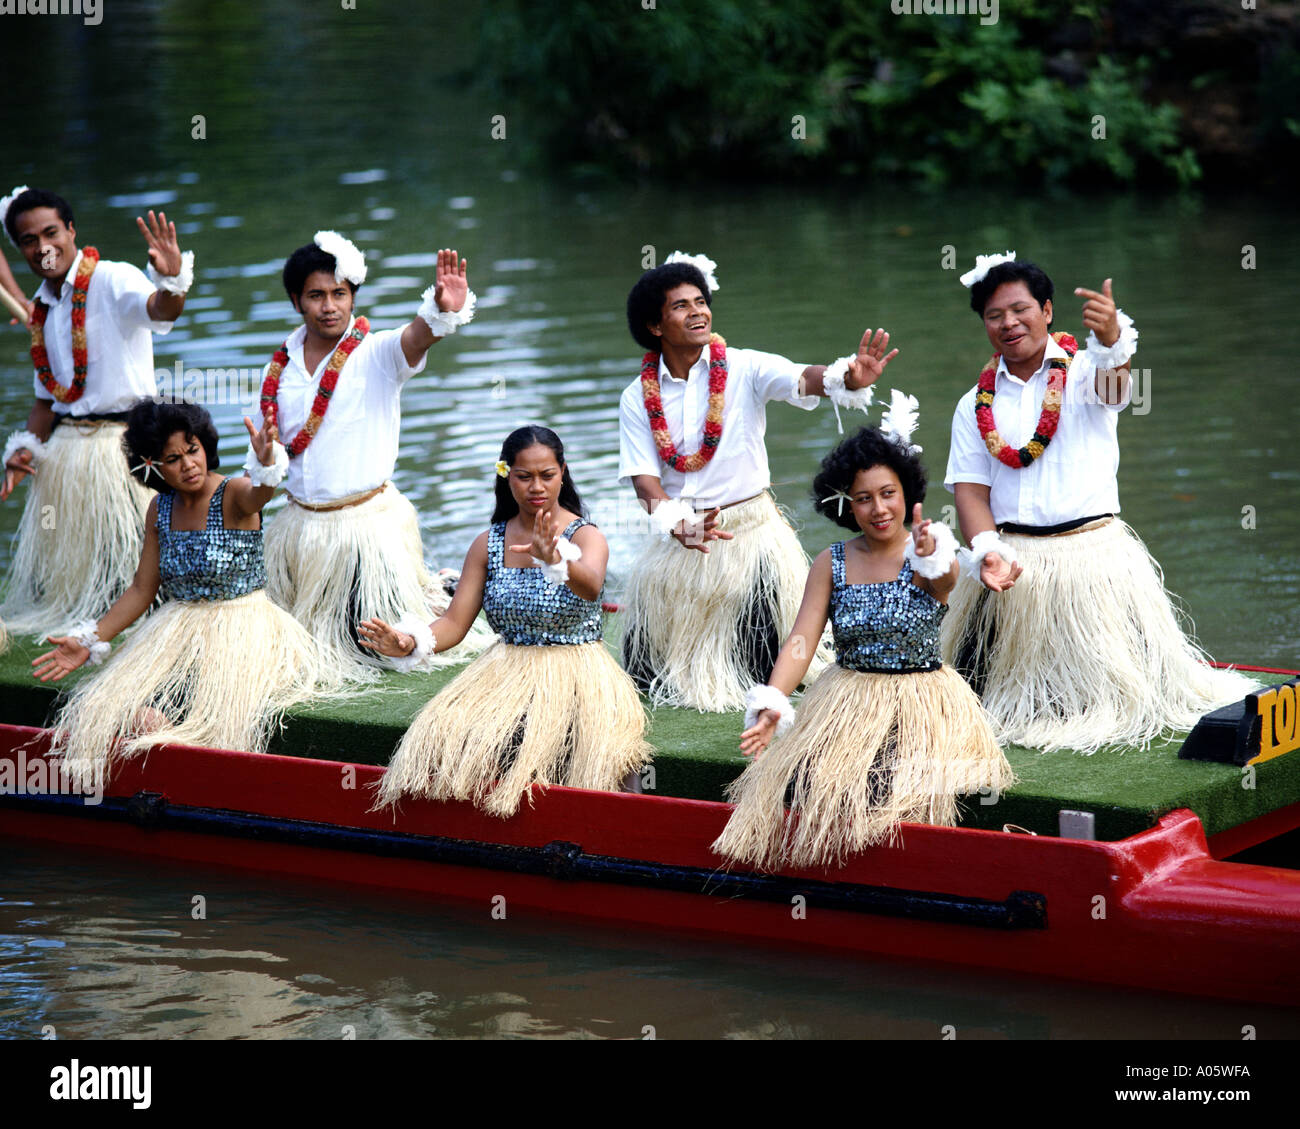 USA - HAWAII: Showtime at the Polynesian Cultural Center on Oahu - Stock Image